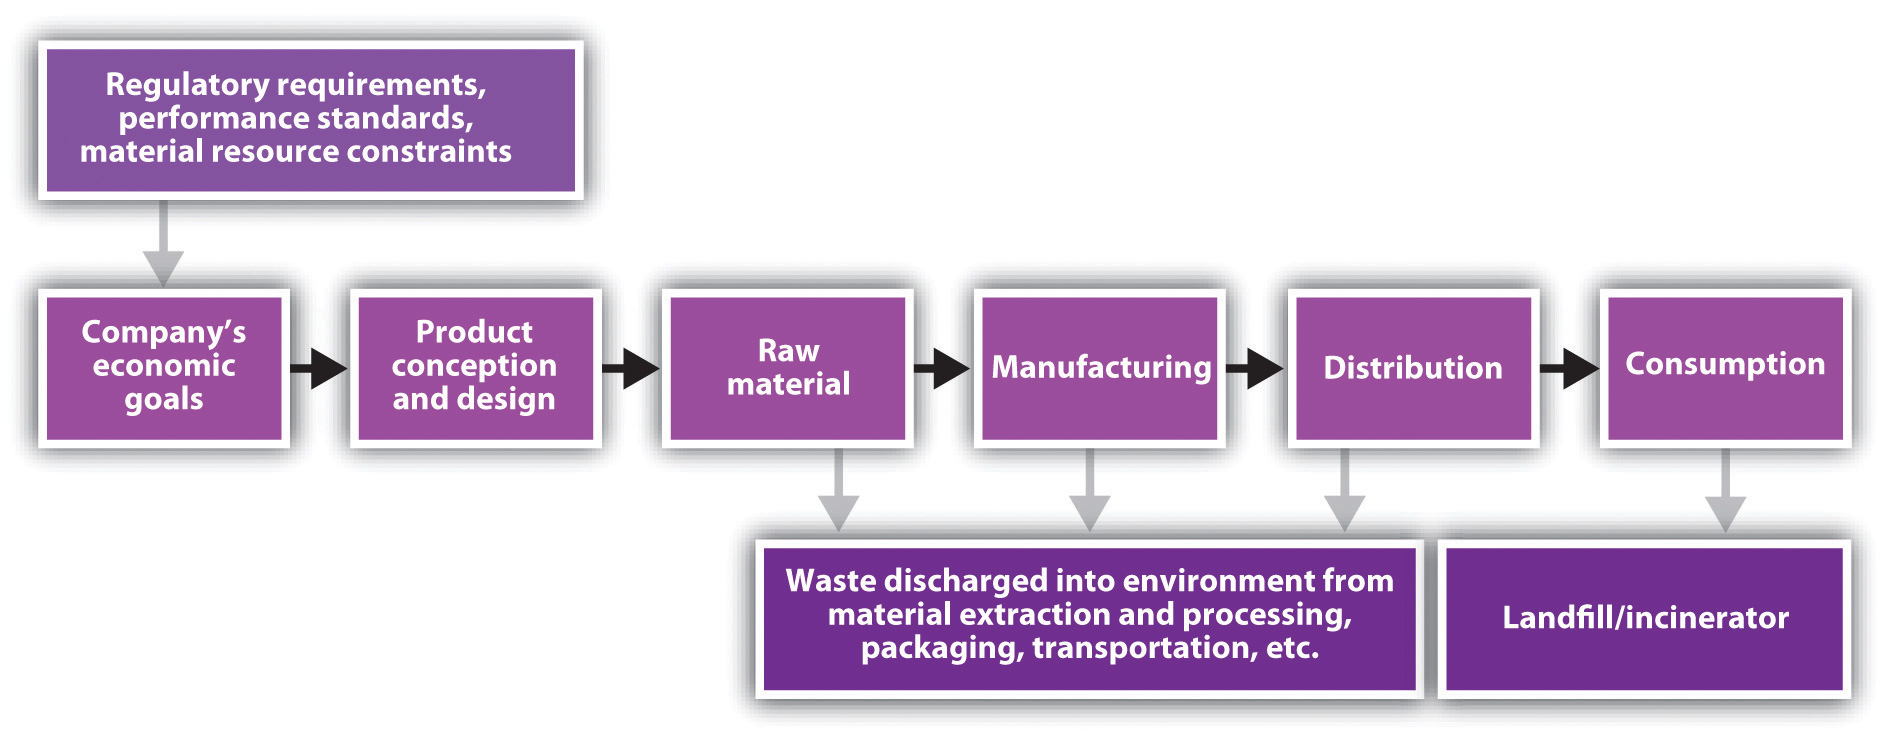 green manufacturing sustainability at frito lay View essay - frito lay wk3 from gscm 504 at devry chicago running head: case study-green manufacturing and sustainability at frito-lay case study-green manufacturing and sustainability at.